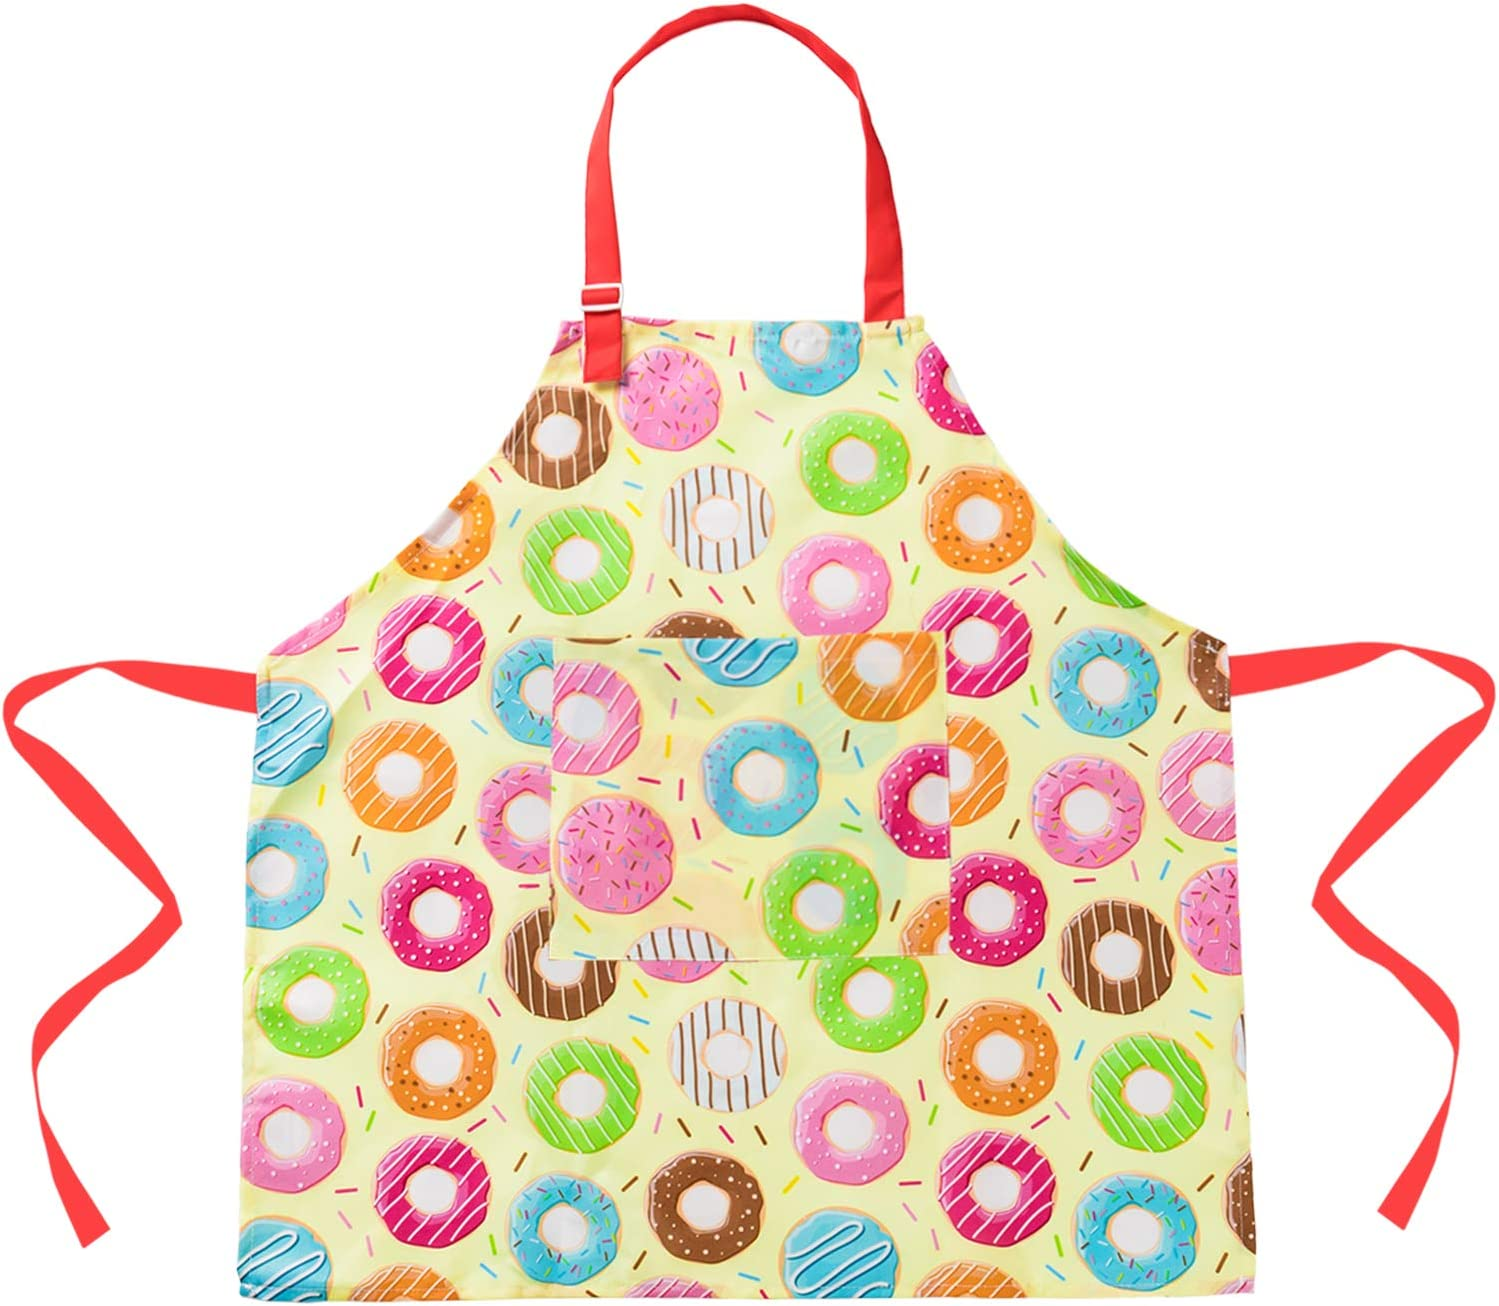 Black+Dog, Small,3-5Years Sylfairy Children Aprons for Kids Girls Rainbow Unicorn Apron with Pockets for Children Kichen Chef Aprons for Cooking Baking Painting and Party